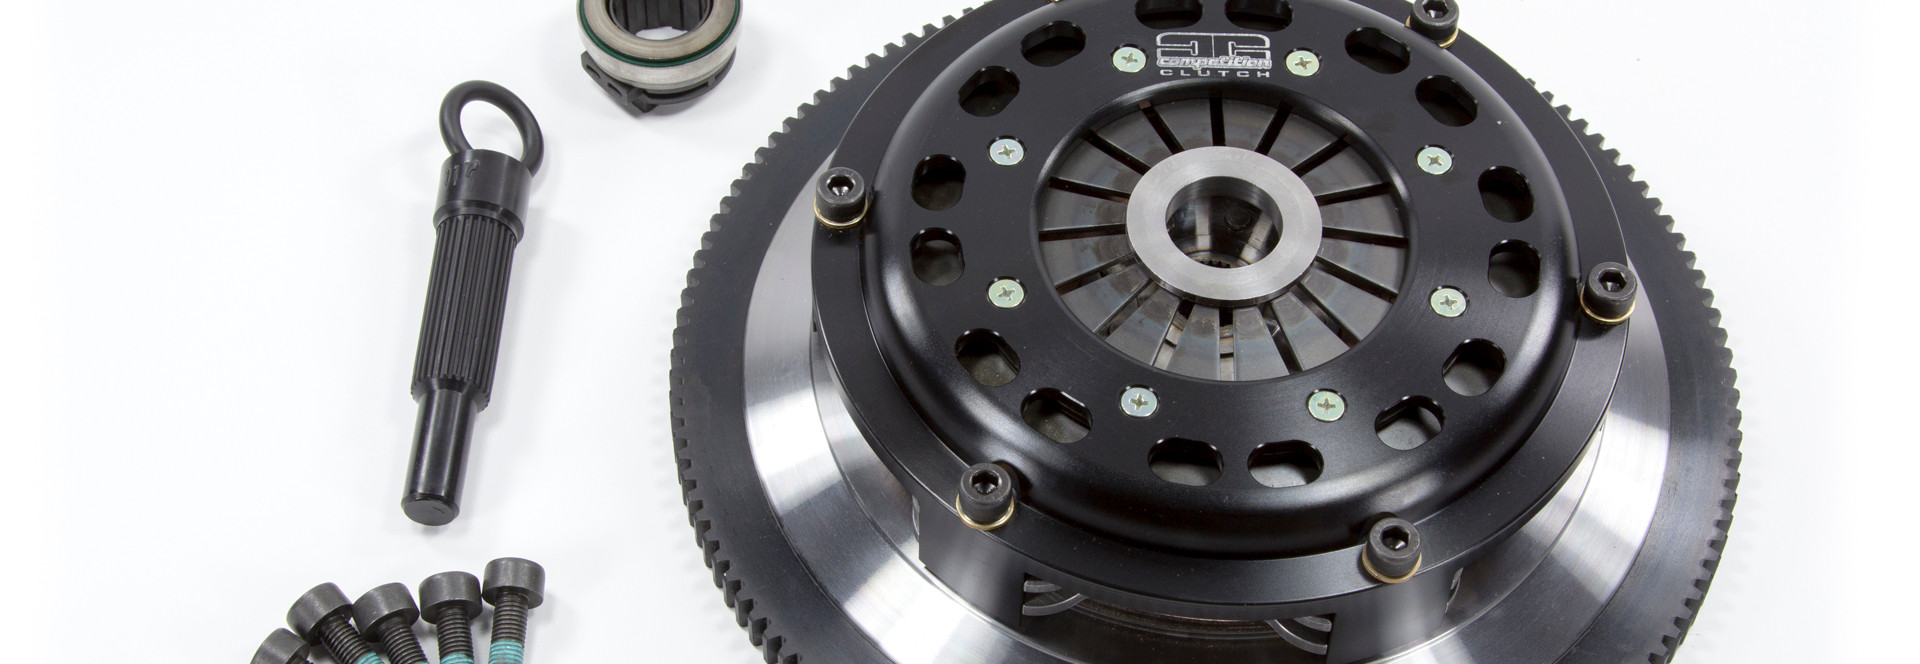 Single or Multi Disc Cerametallic Clutch Kits